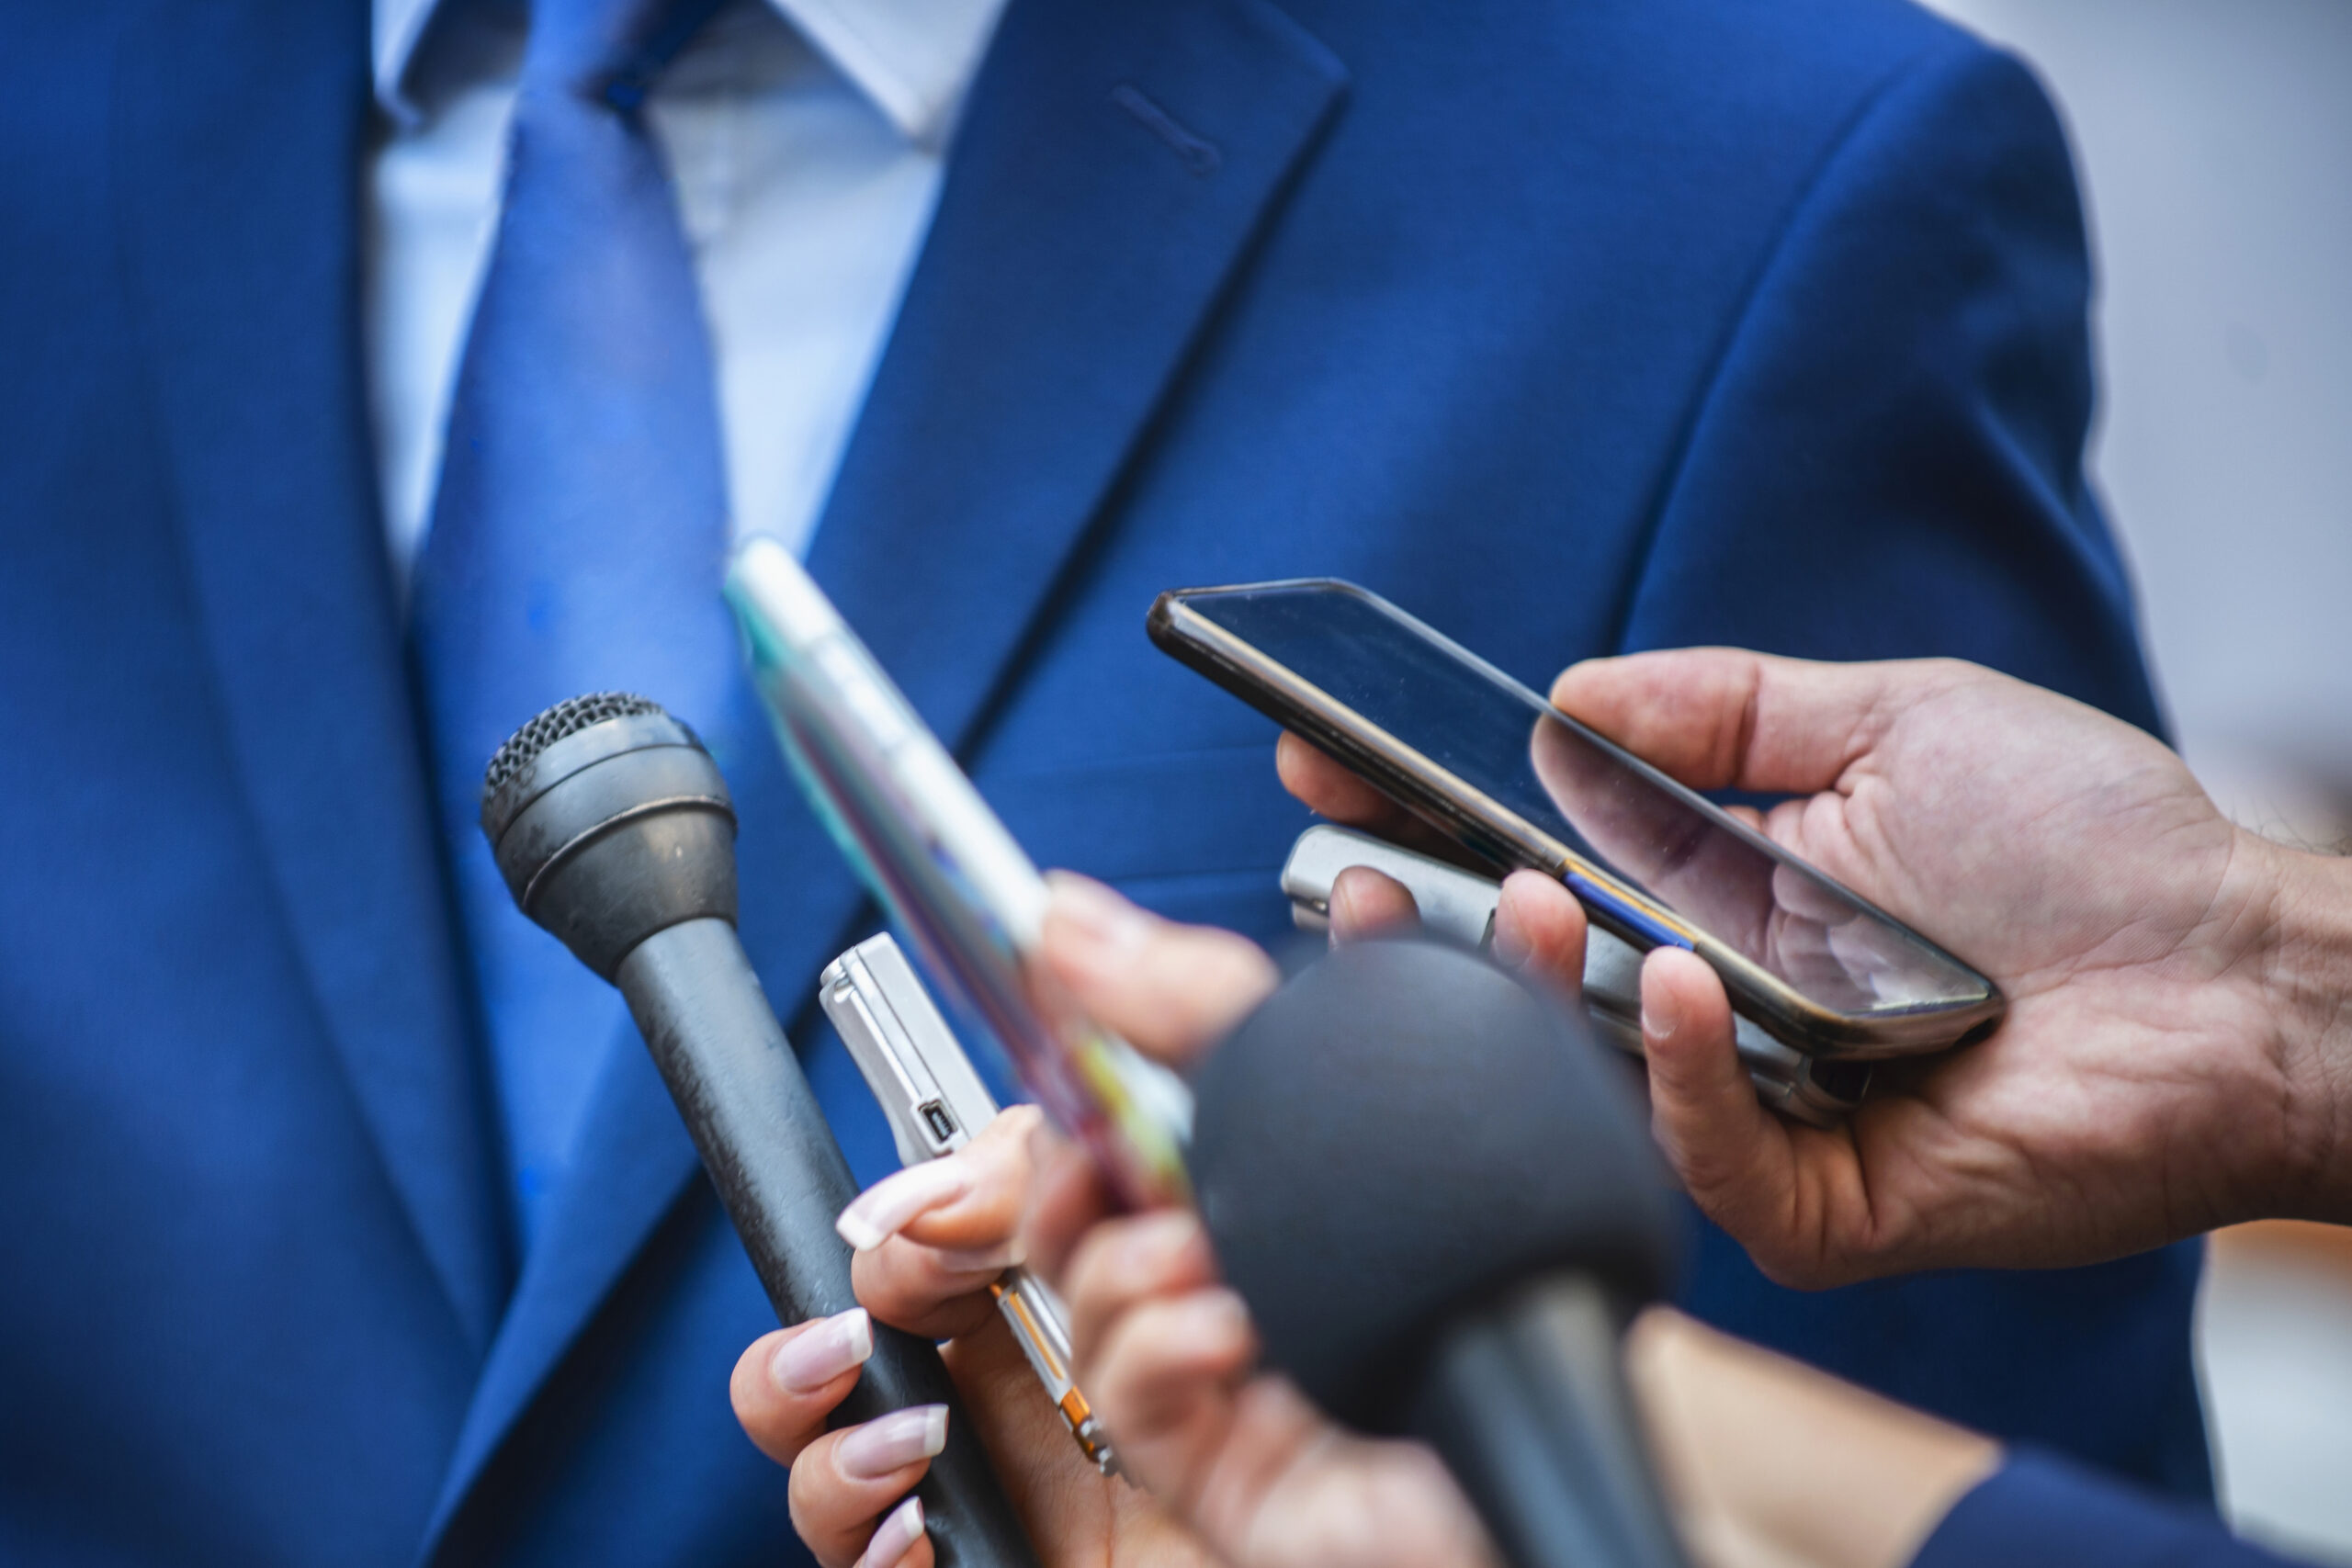 Media Interview. Journalists Interviewing Politician or Businessman